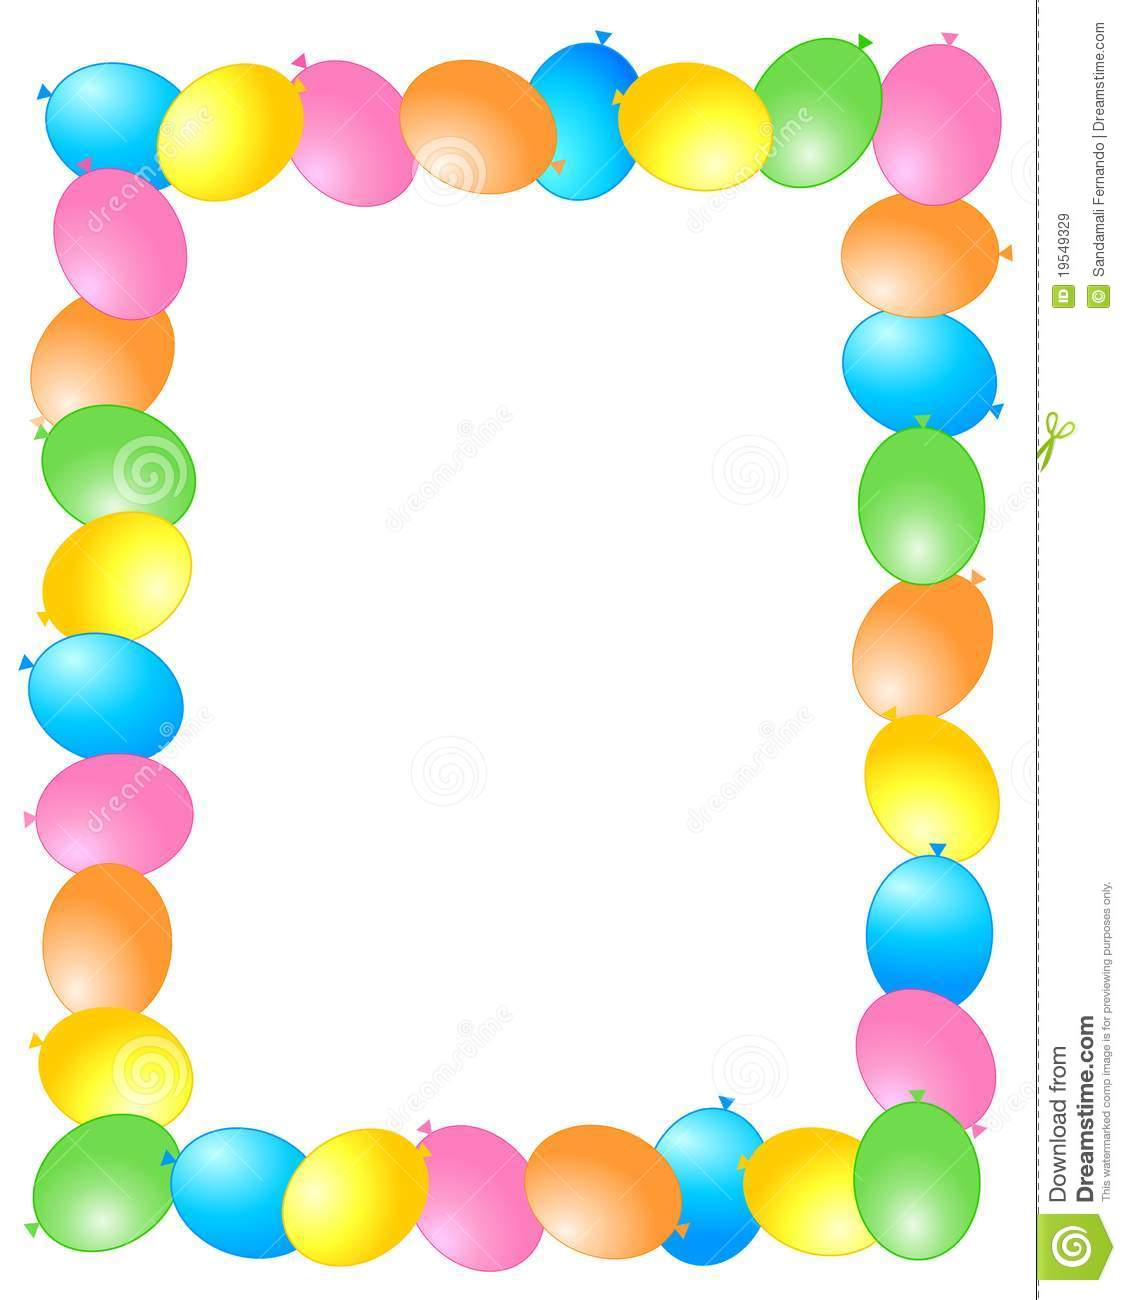 free birthday clipart borders and frames ; happy-birthday-border-clipart-5